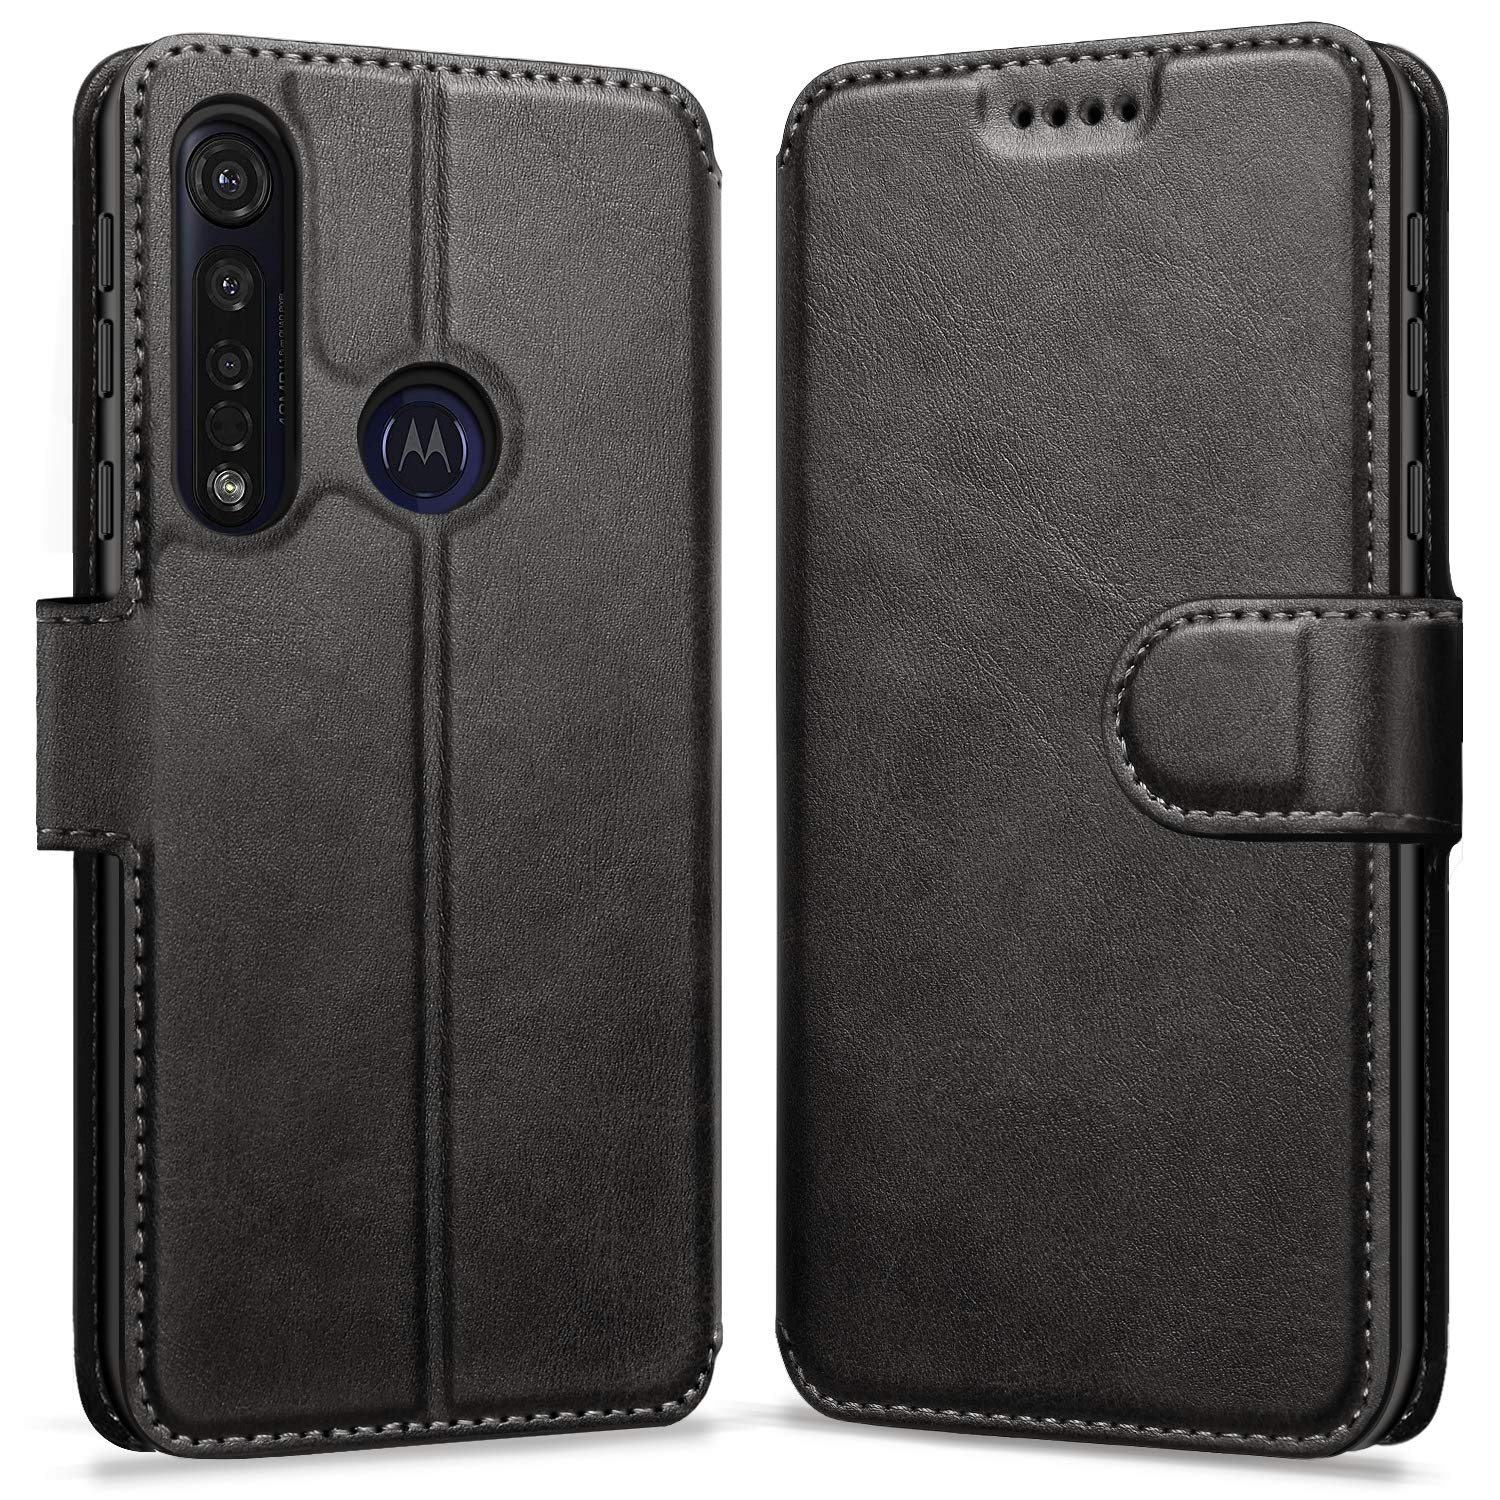 Funda Flip Cover Billetera Para Motorola Moto G8 Plus(negra)